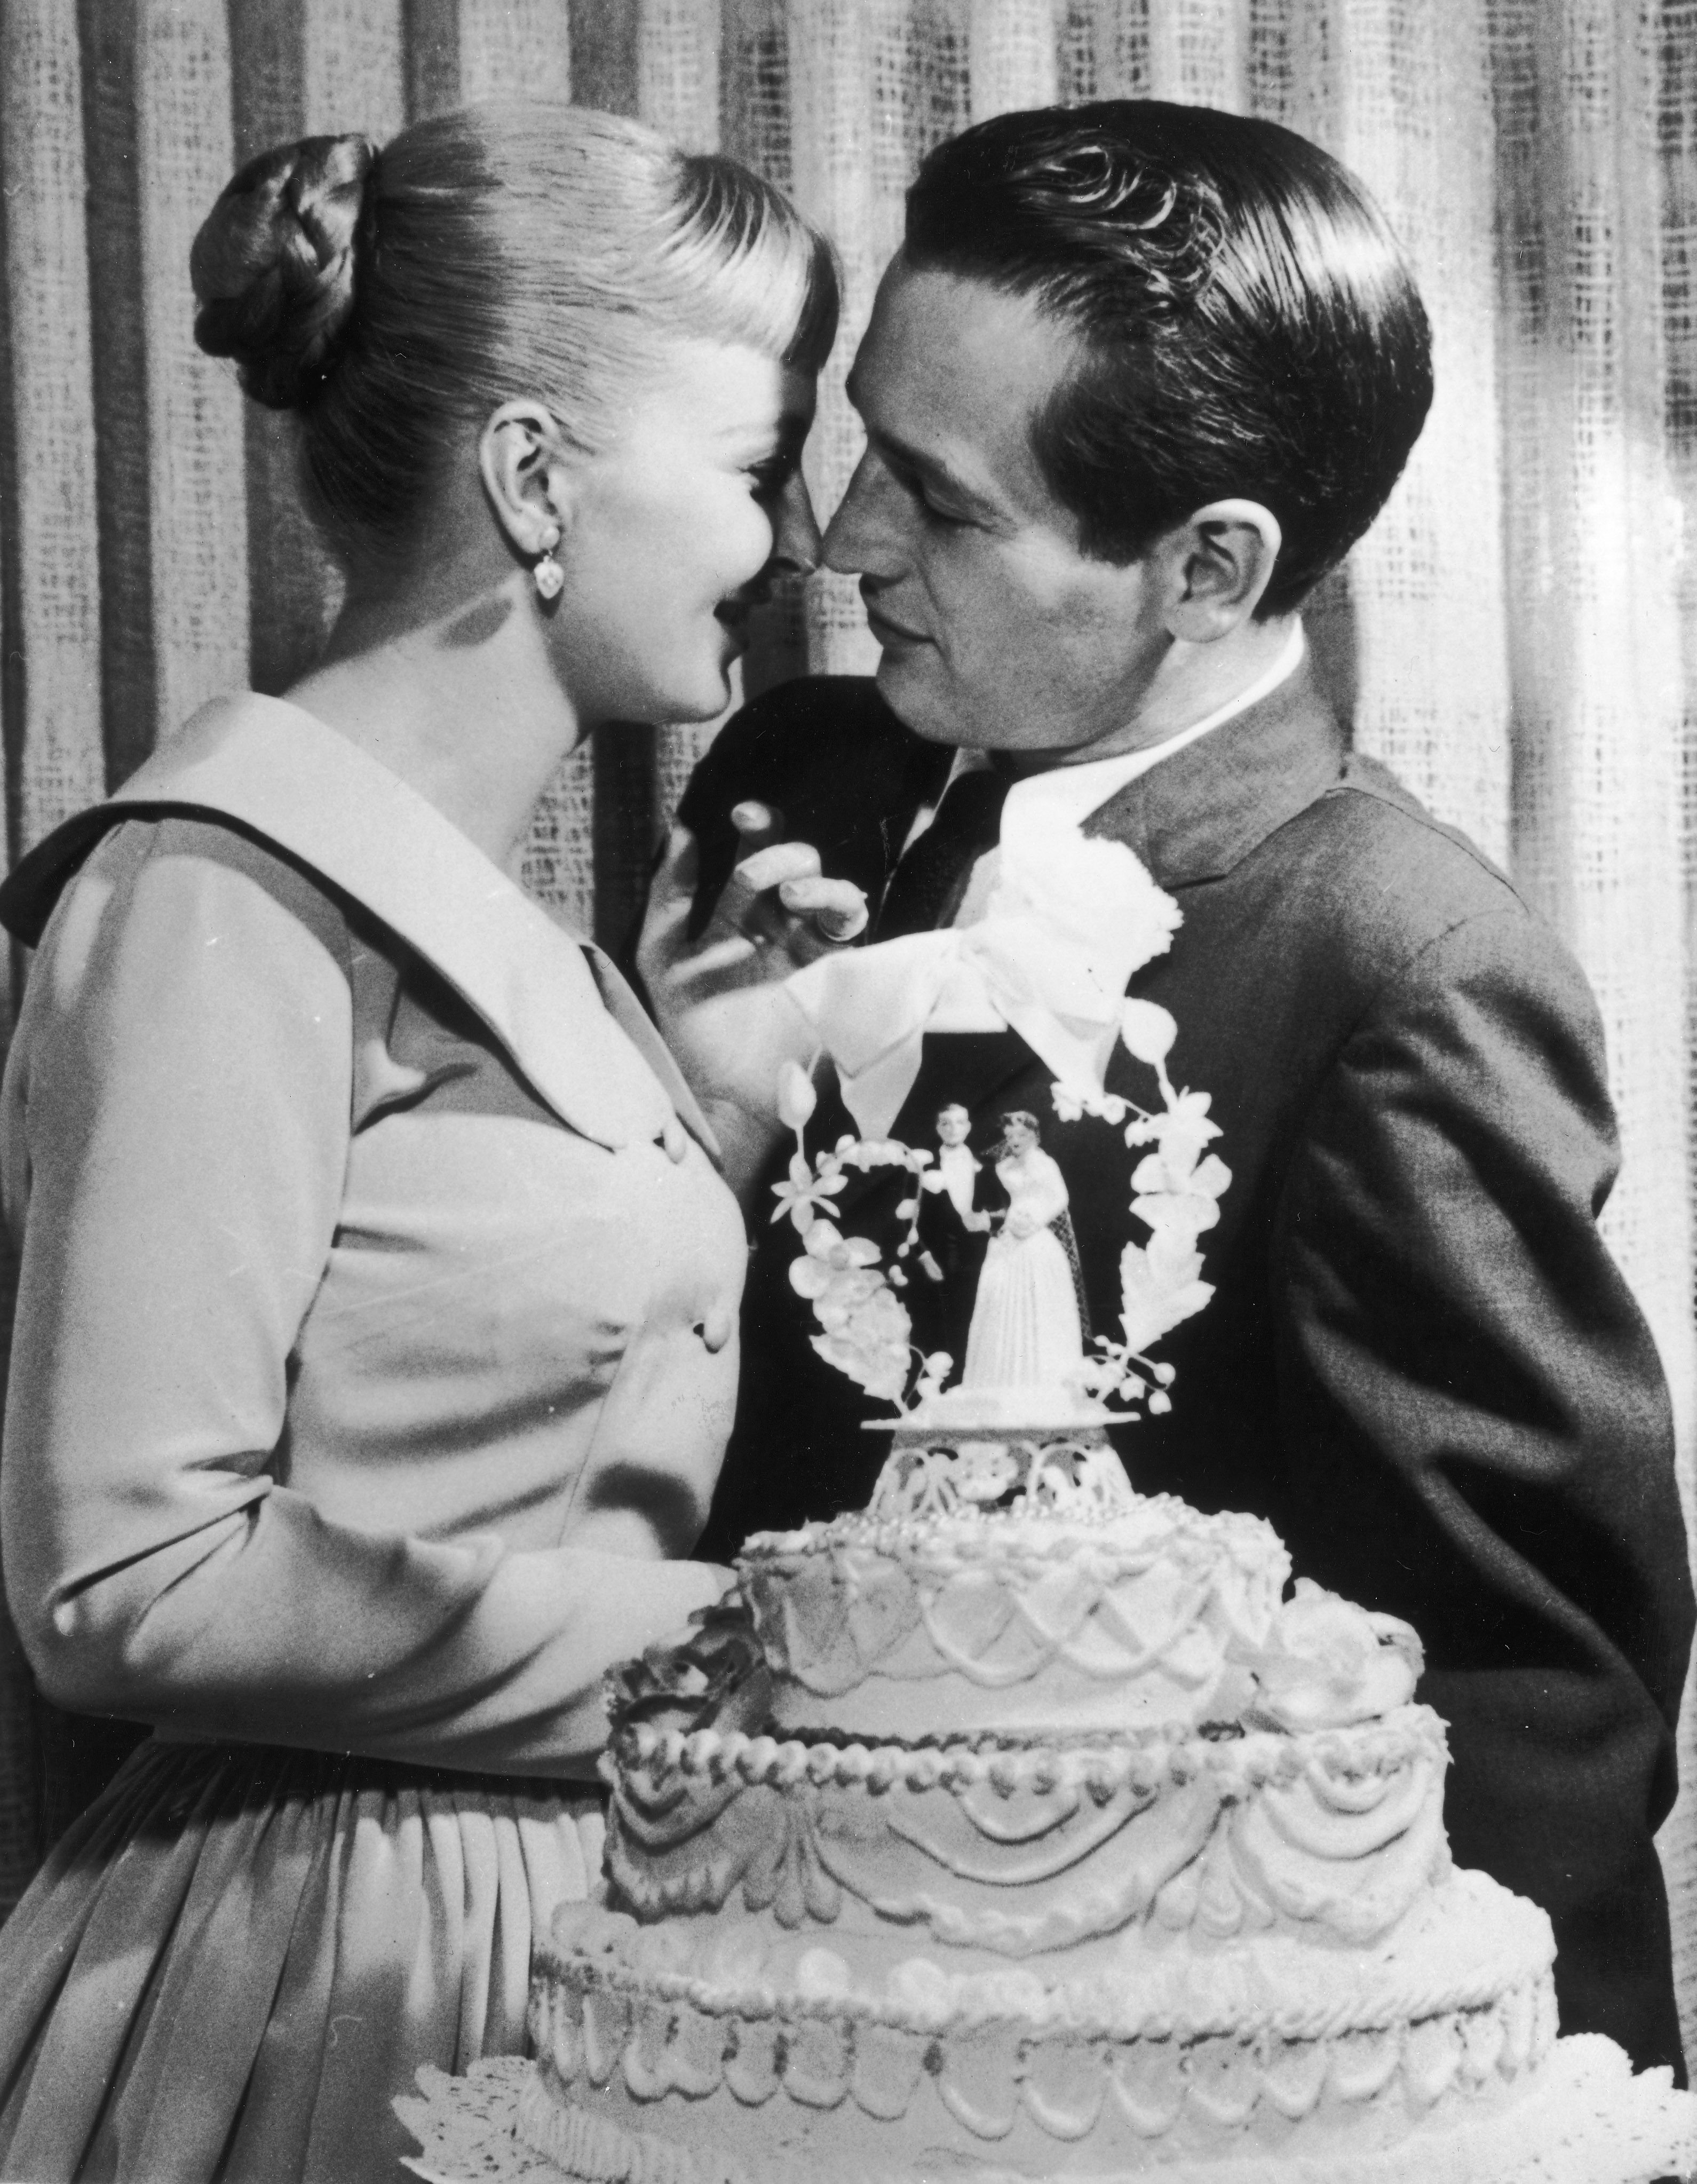 Paul Newman and Joanne Woodward at their wedding in Las Vegas in 1958   Source: Getty Images